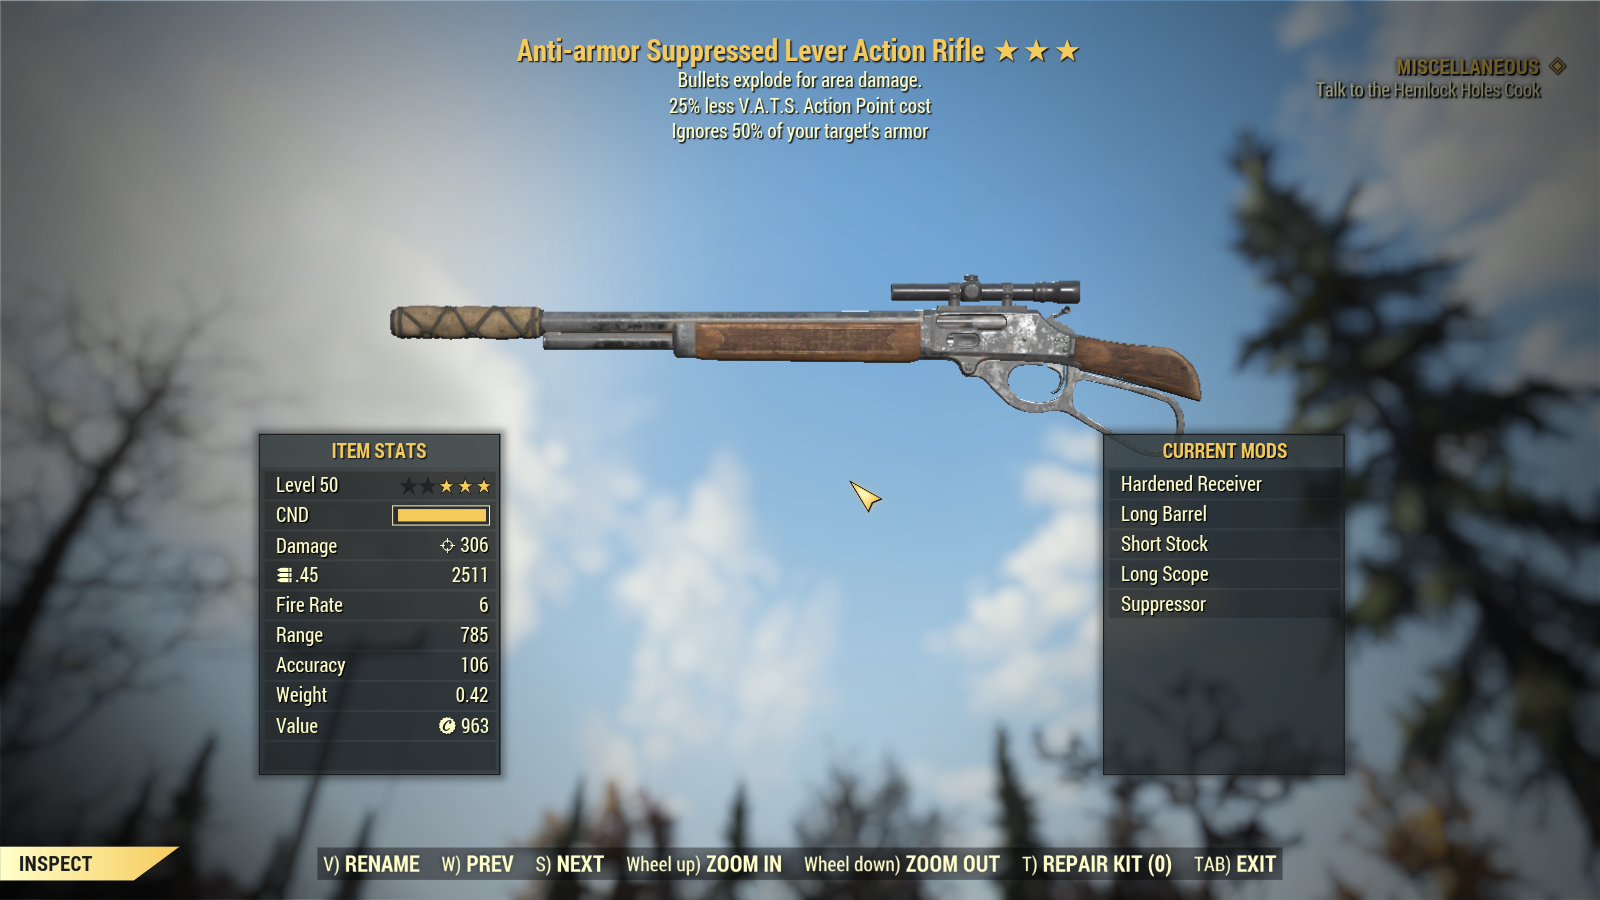 [Glitched Weapon] Anti-Armor Explosive Lever Action Rifle 25% Less VATS AP Cost [600+ DMG]